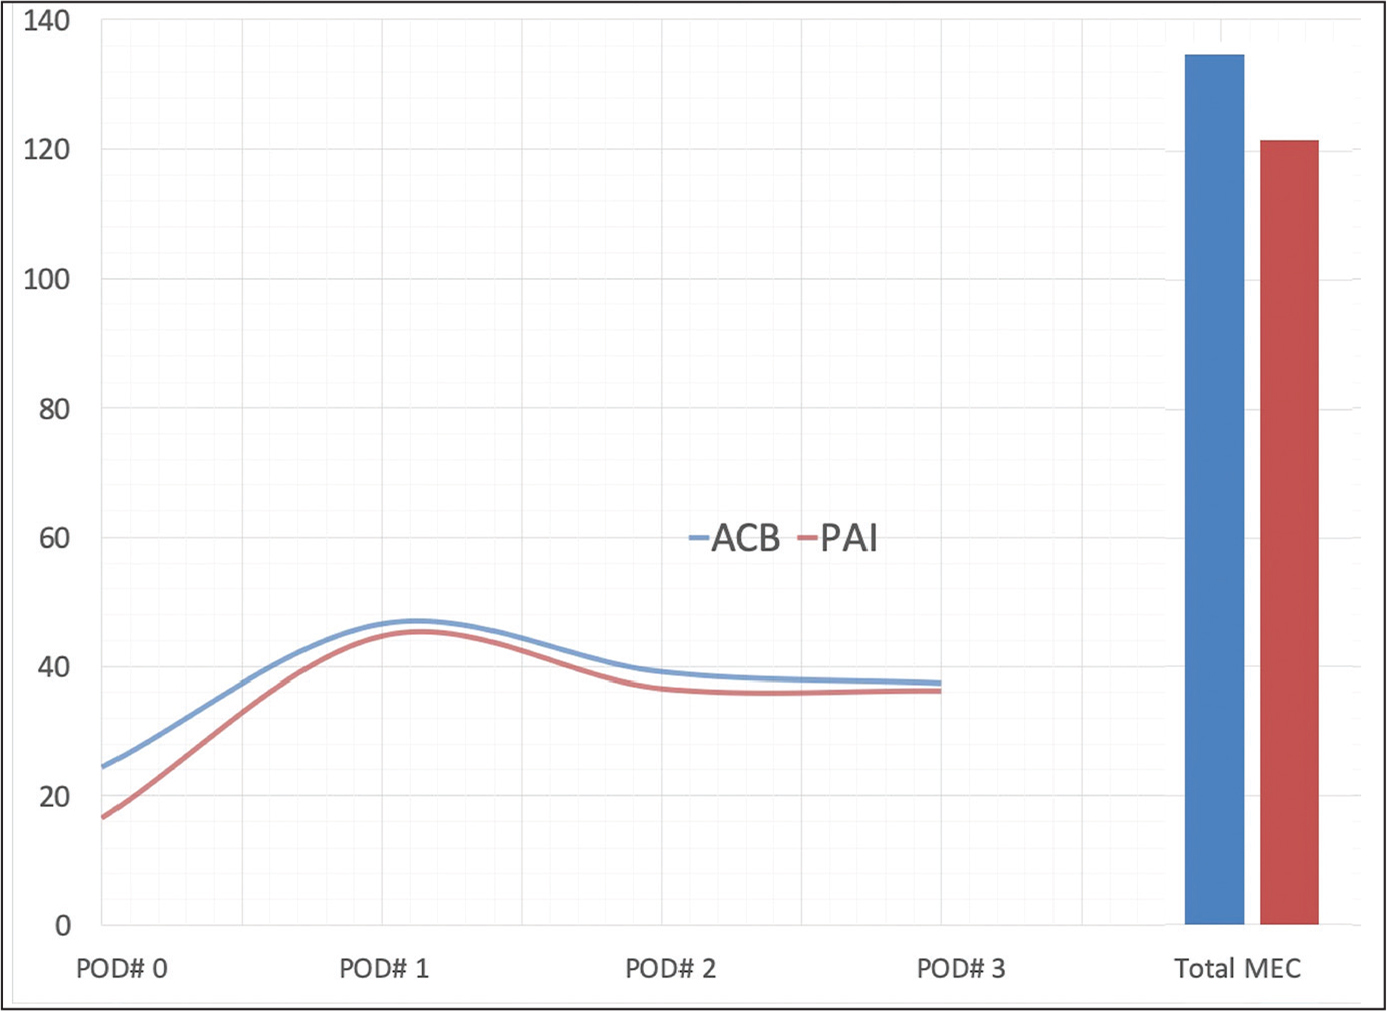 Mean accumulative daily converted morphine equivalent consumption (MEC) and total consumption were similar between the 2 groups. Abbreviations: ACB, adductor canal block; PAI, periarticular injection; POD, postoperative day.